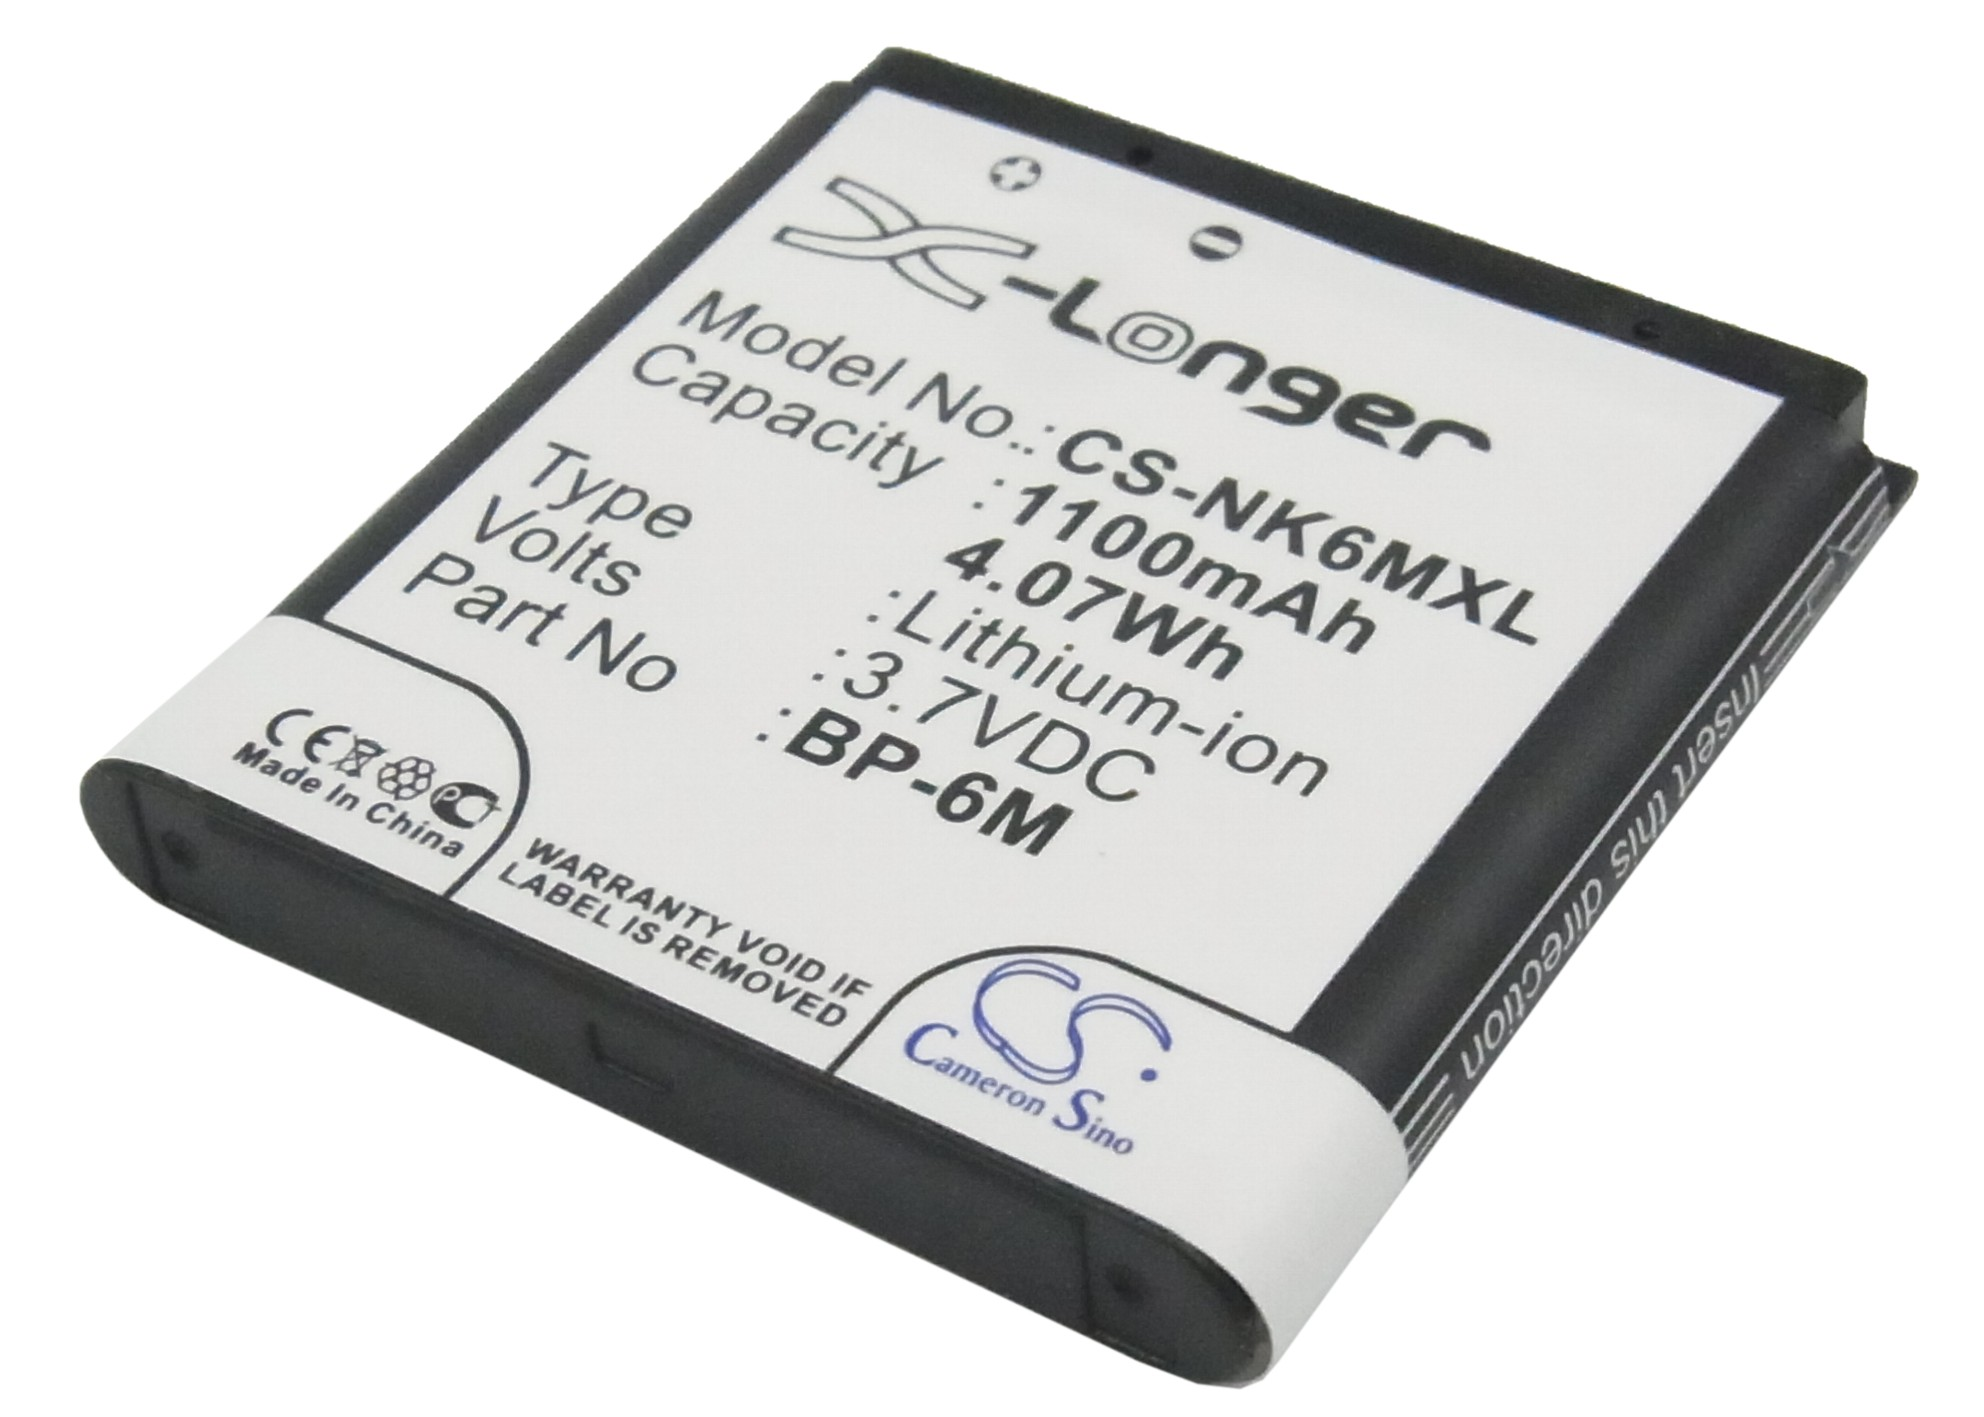 1100mAh Battery For NOKIA 3250 XpressMusic, 6151, 6233 ...